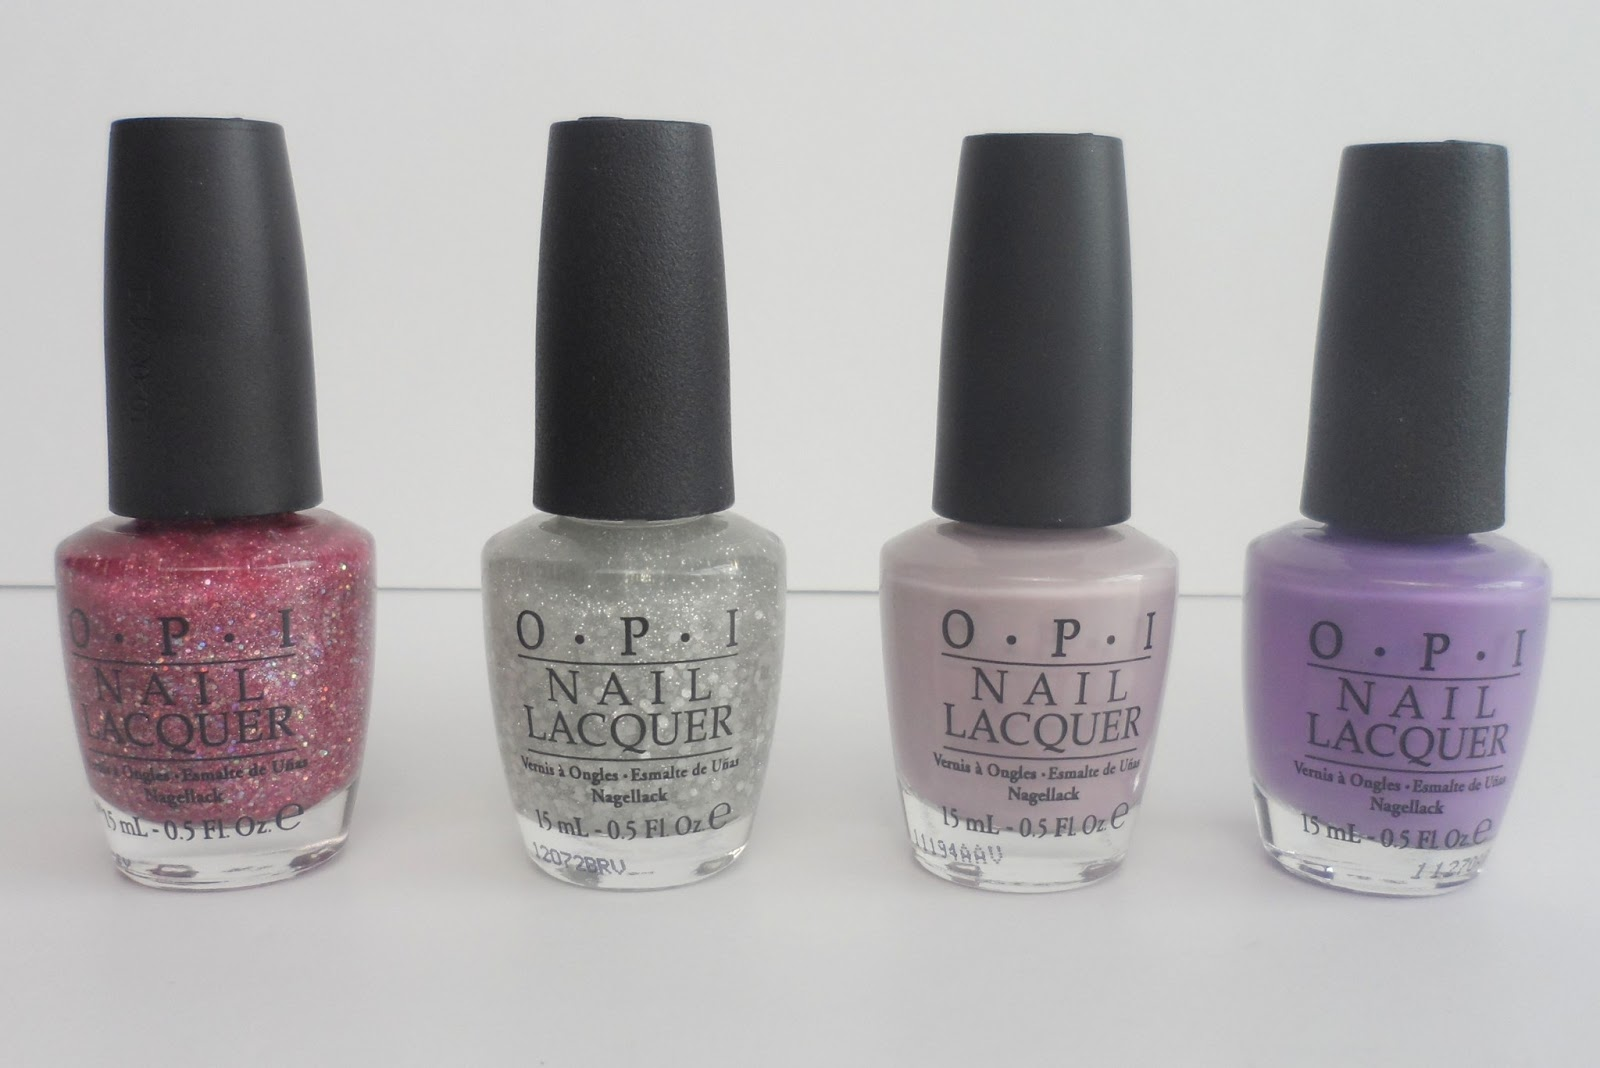 Nail Polish. Refine view all. Brands. Bourjois. Bronx Colors. China Glaze. Covergirl. Essie. Gellack. L'Oreal. Bronx Nail Lacquer Gel Look Snow. $ Maybelline Colour Show Nail Polish - runs from the 1st December to the 12th December. Offers not applicable to prior or pending orders. If required a discount code must be applied. This.